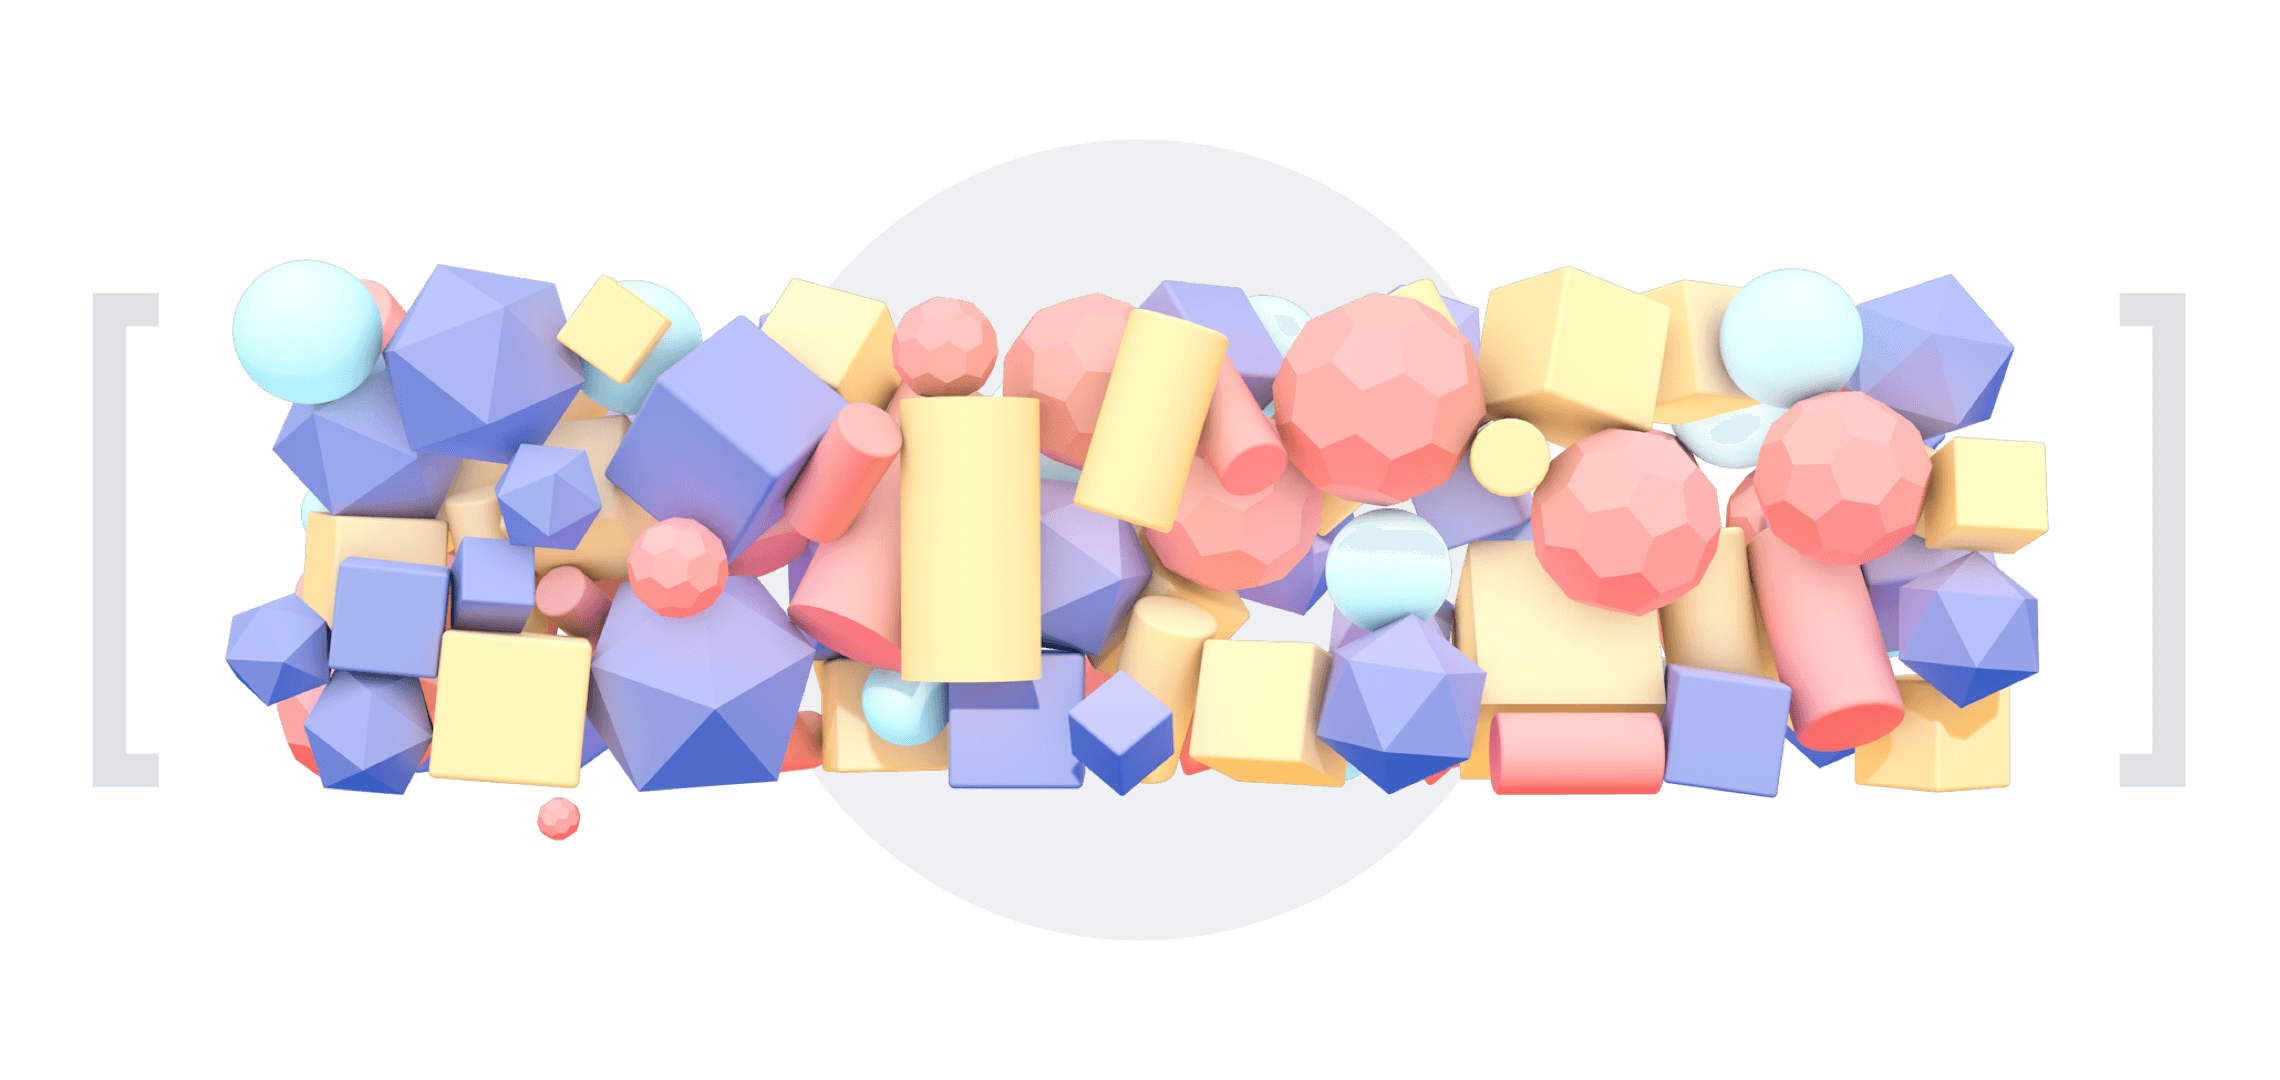 3d render of colorful objects tightly packed in rectangular shape in between of square brackets